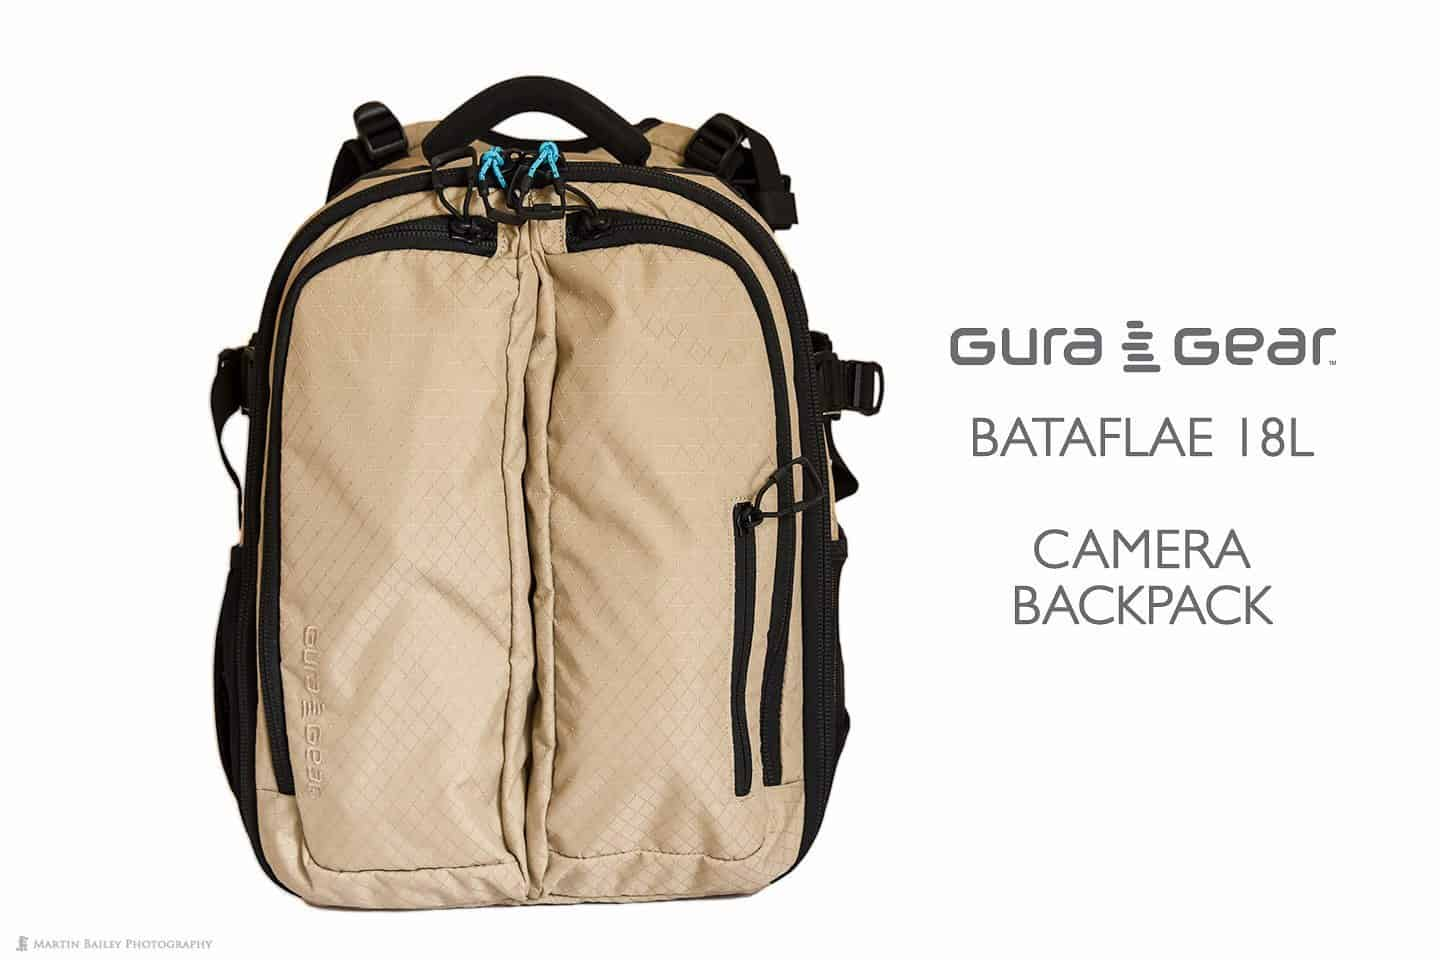 Gura Gear Bataflae 18L Camera Backpack